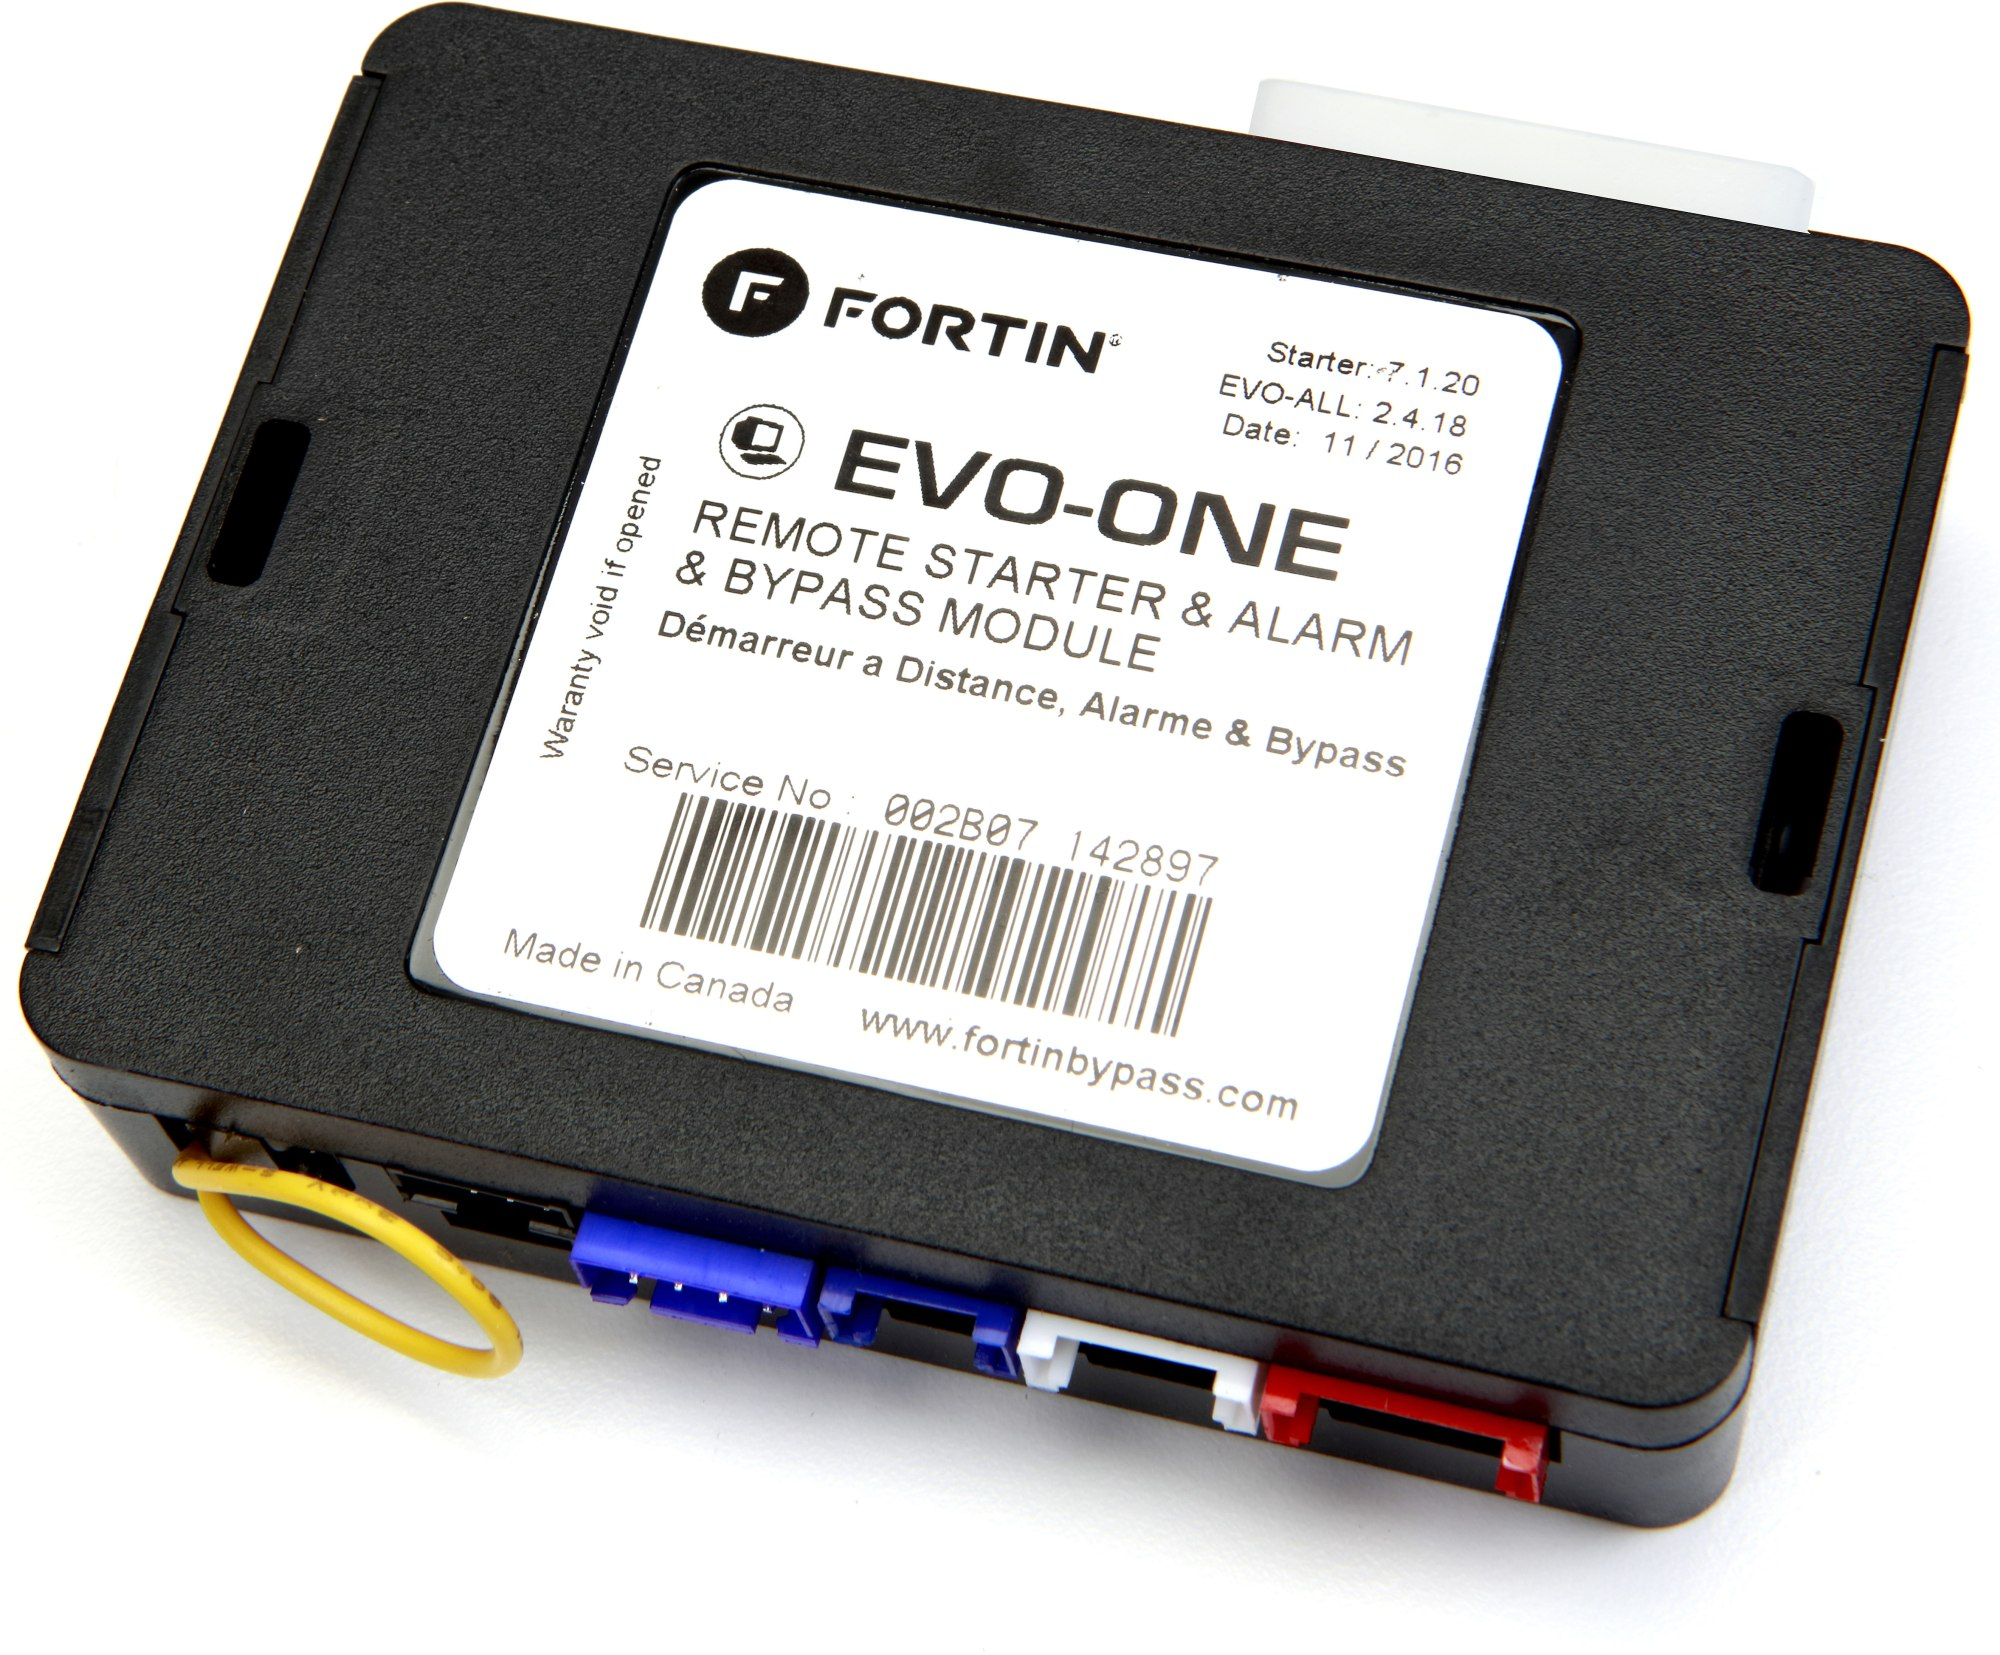 hight resolution of fortin evo one toy1 digital high current remote start system for select 1995 up toyota vehicles at crutchfield